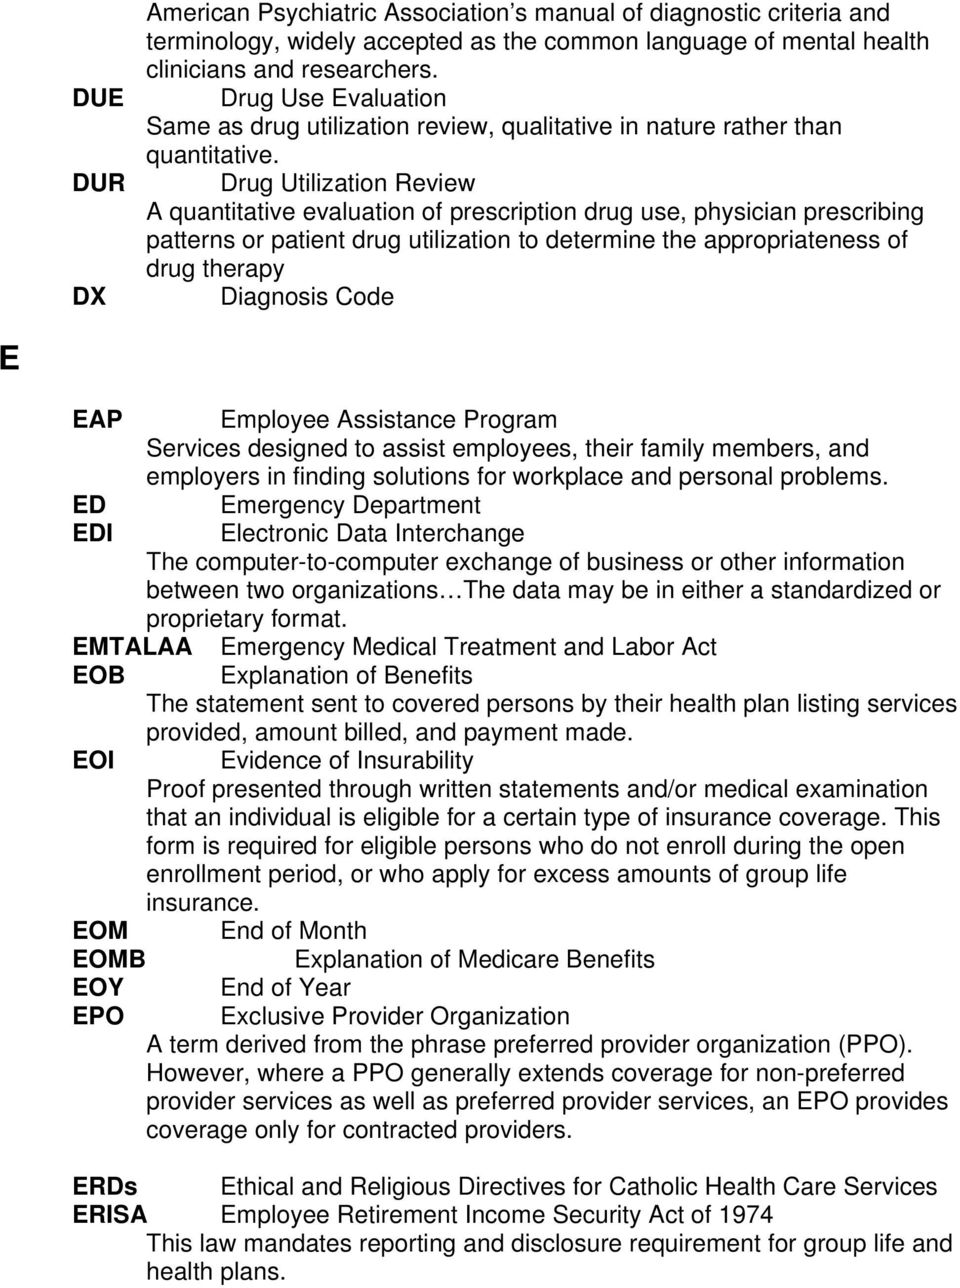 Drug Utilization Review A quantitative evaluation of prescription drug use, physician prescribing patterns or patient drug utilization to determine the appropriateness of drug therapy Diagnosis Code